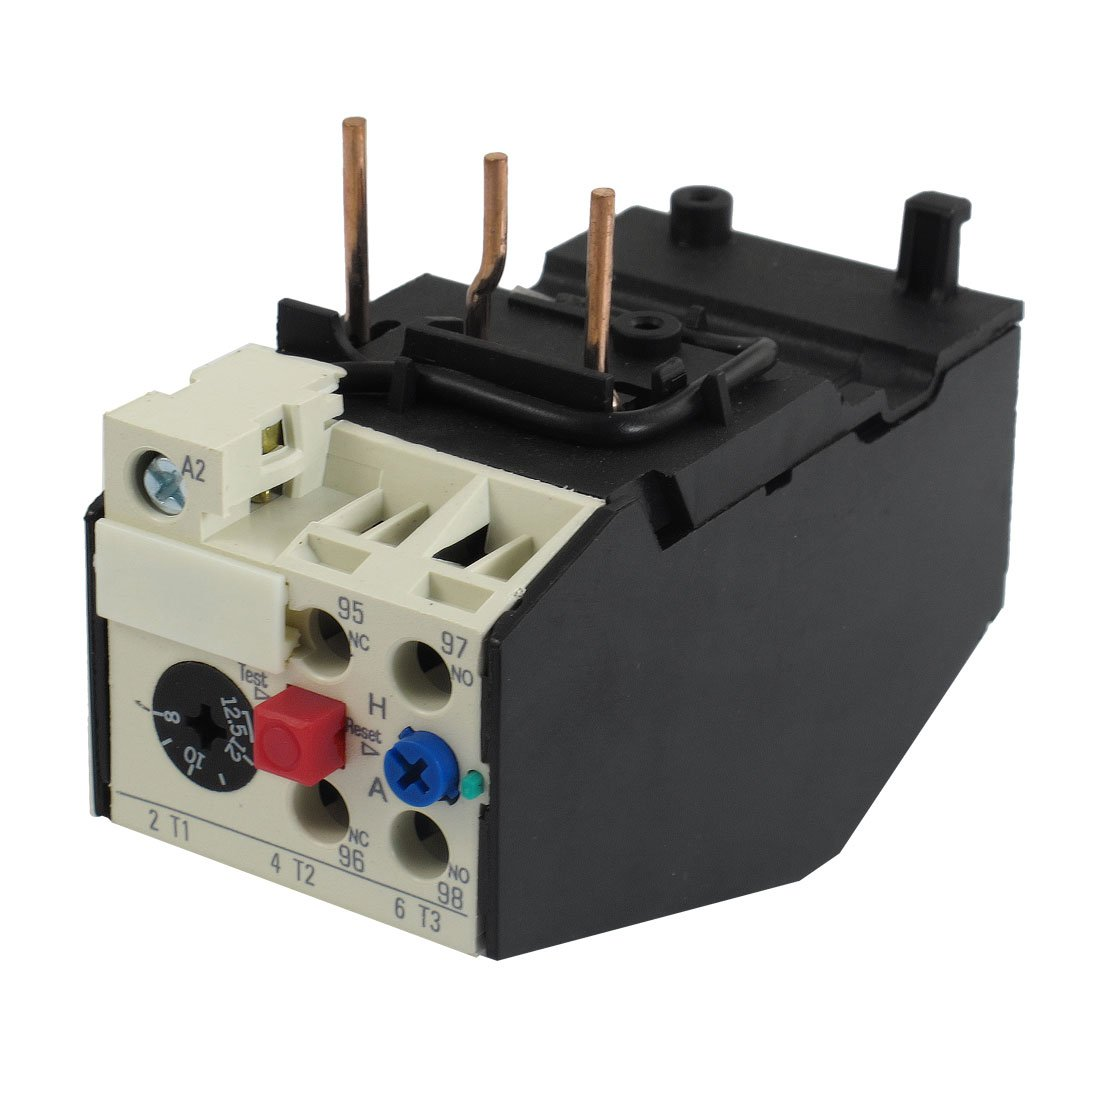 Uxcell JRS2-12.5 12.5A 3 Pole 8-12.5A Adjustable Motor Protective Thermal Overload Relays